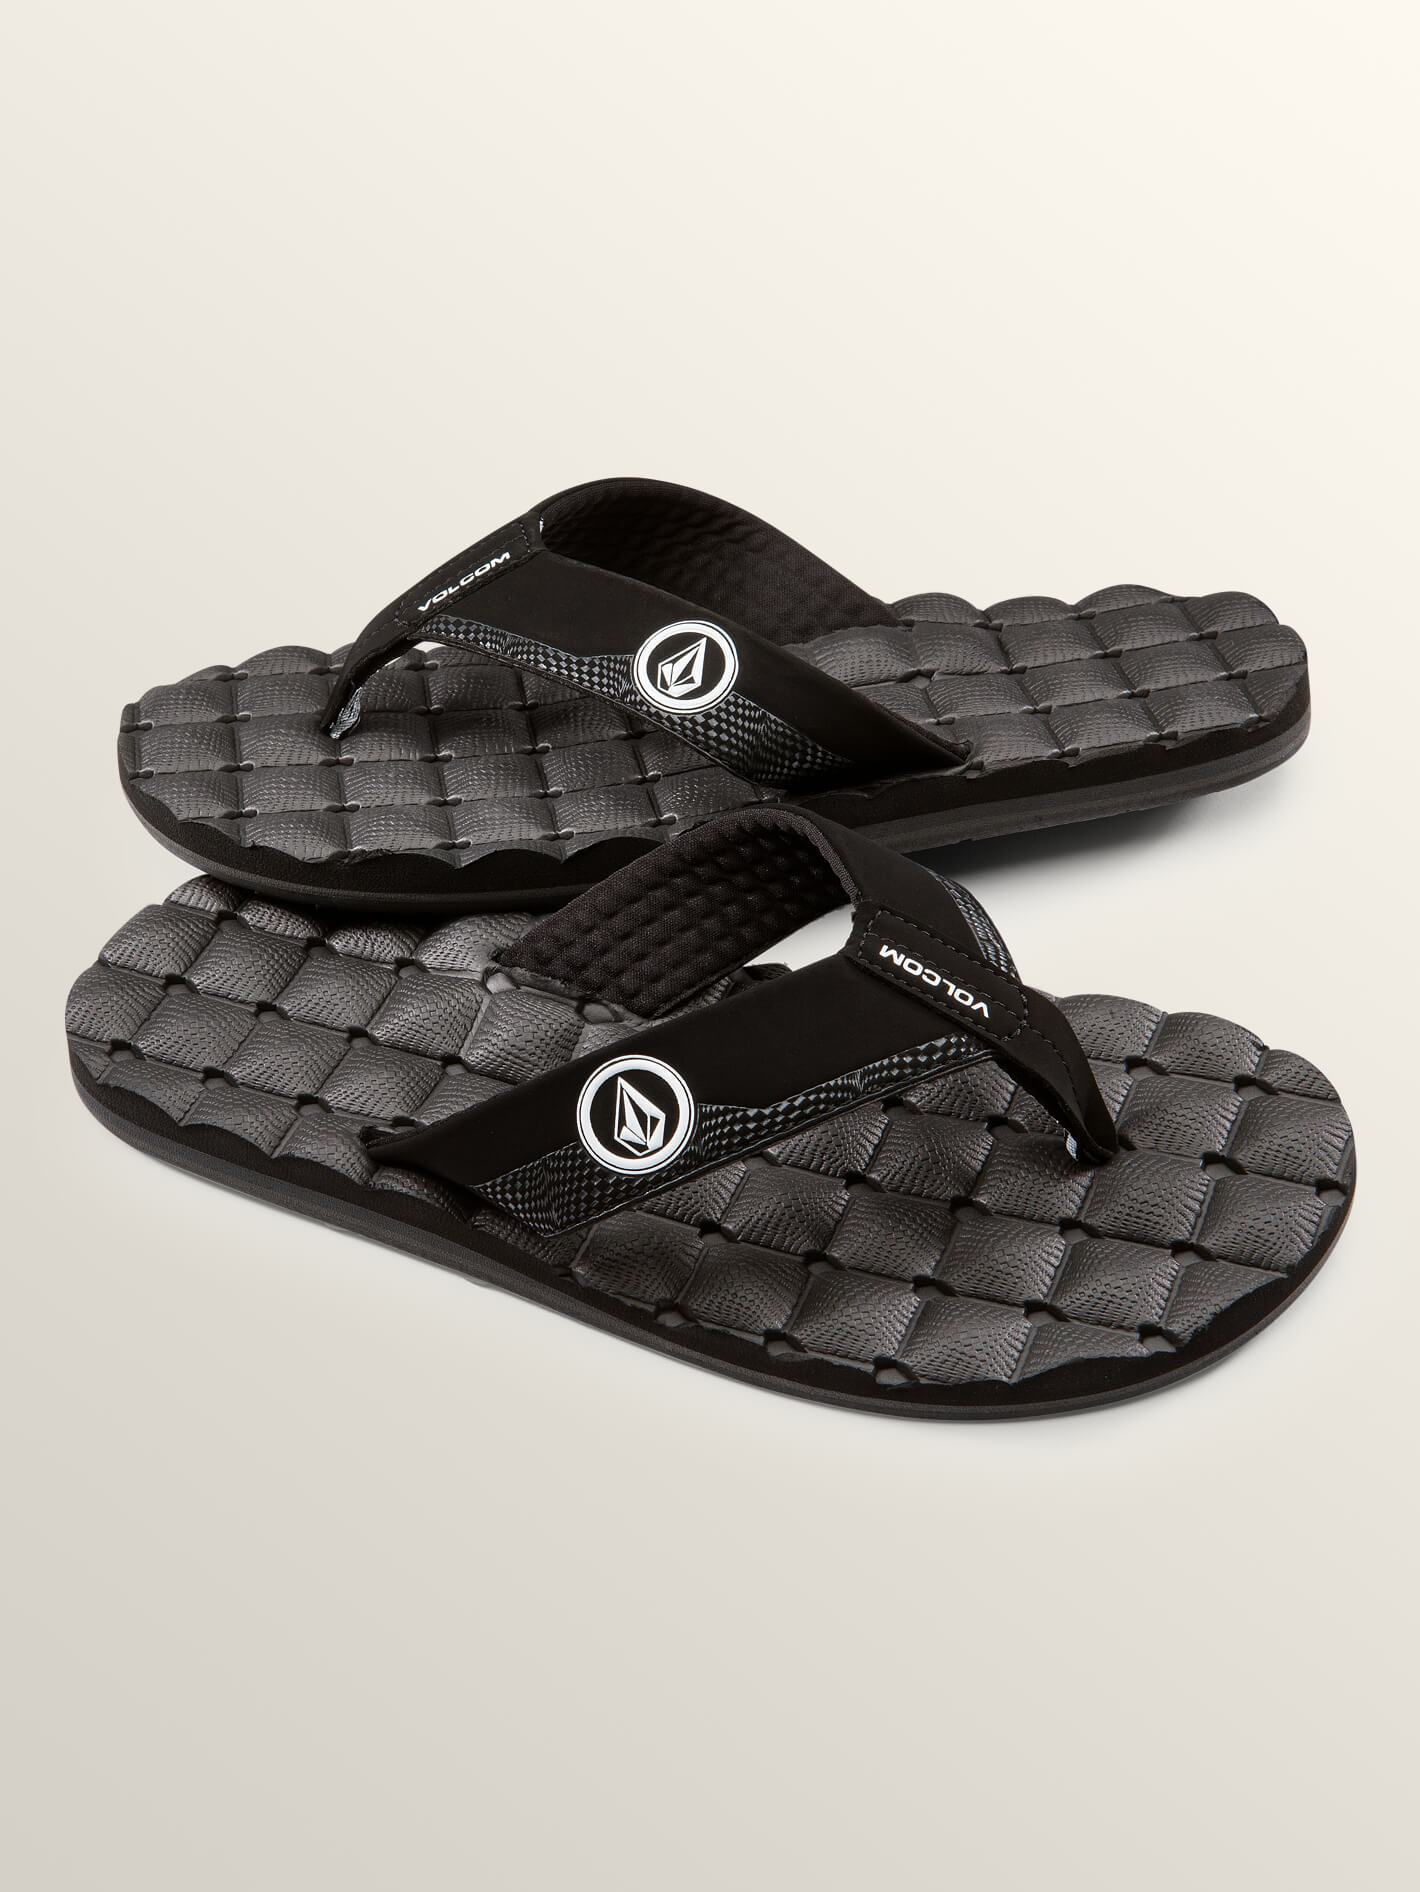 Recliner Sandals - Black White - BLACK WHITE / 13